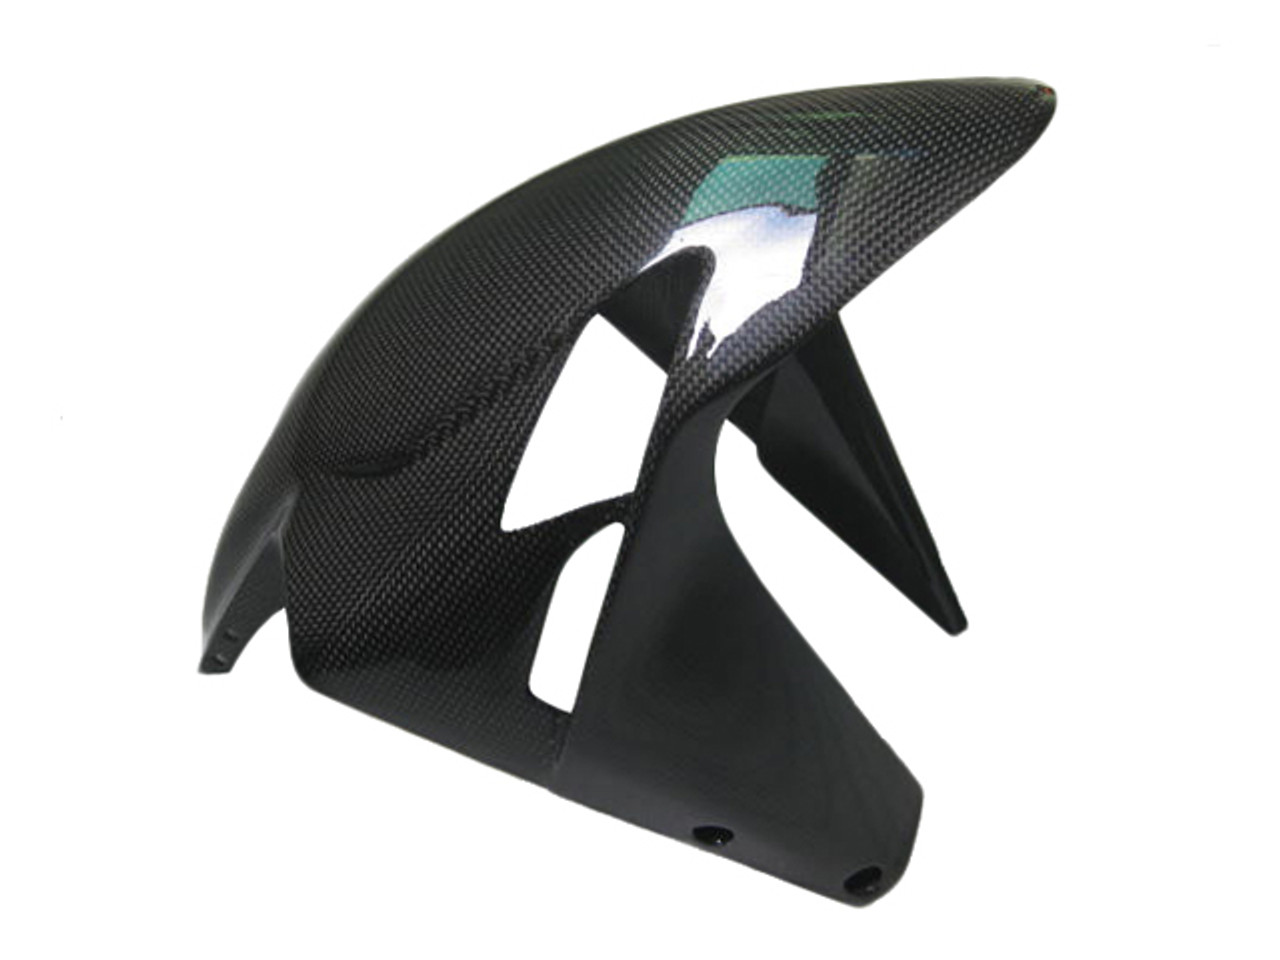 Front Fender in Carbon with Fiberglass for MV Agusta F3, Brutale  675/800 2013-2015 in Glossy Plain Weave Carbon Fiber Carbon